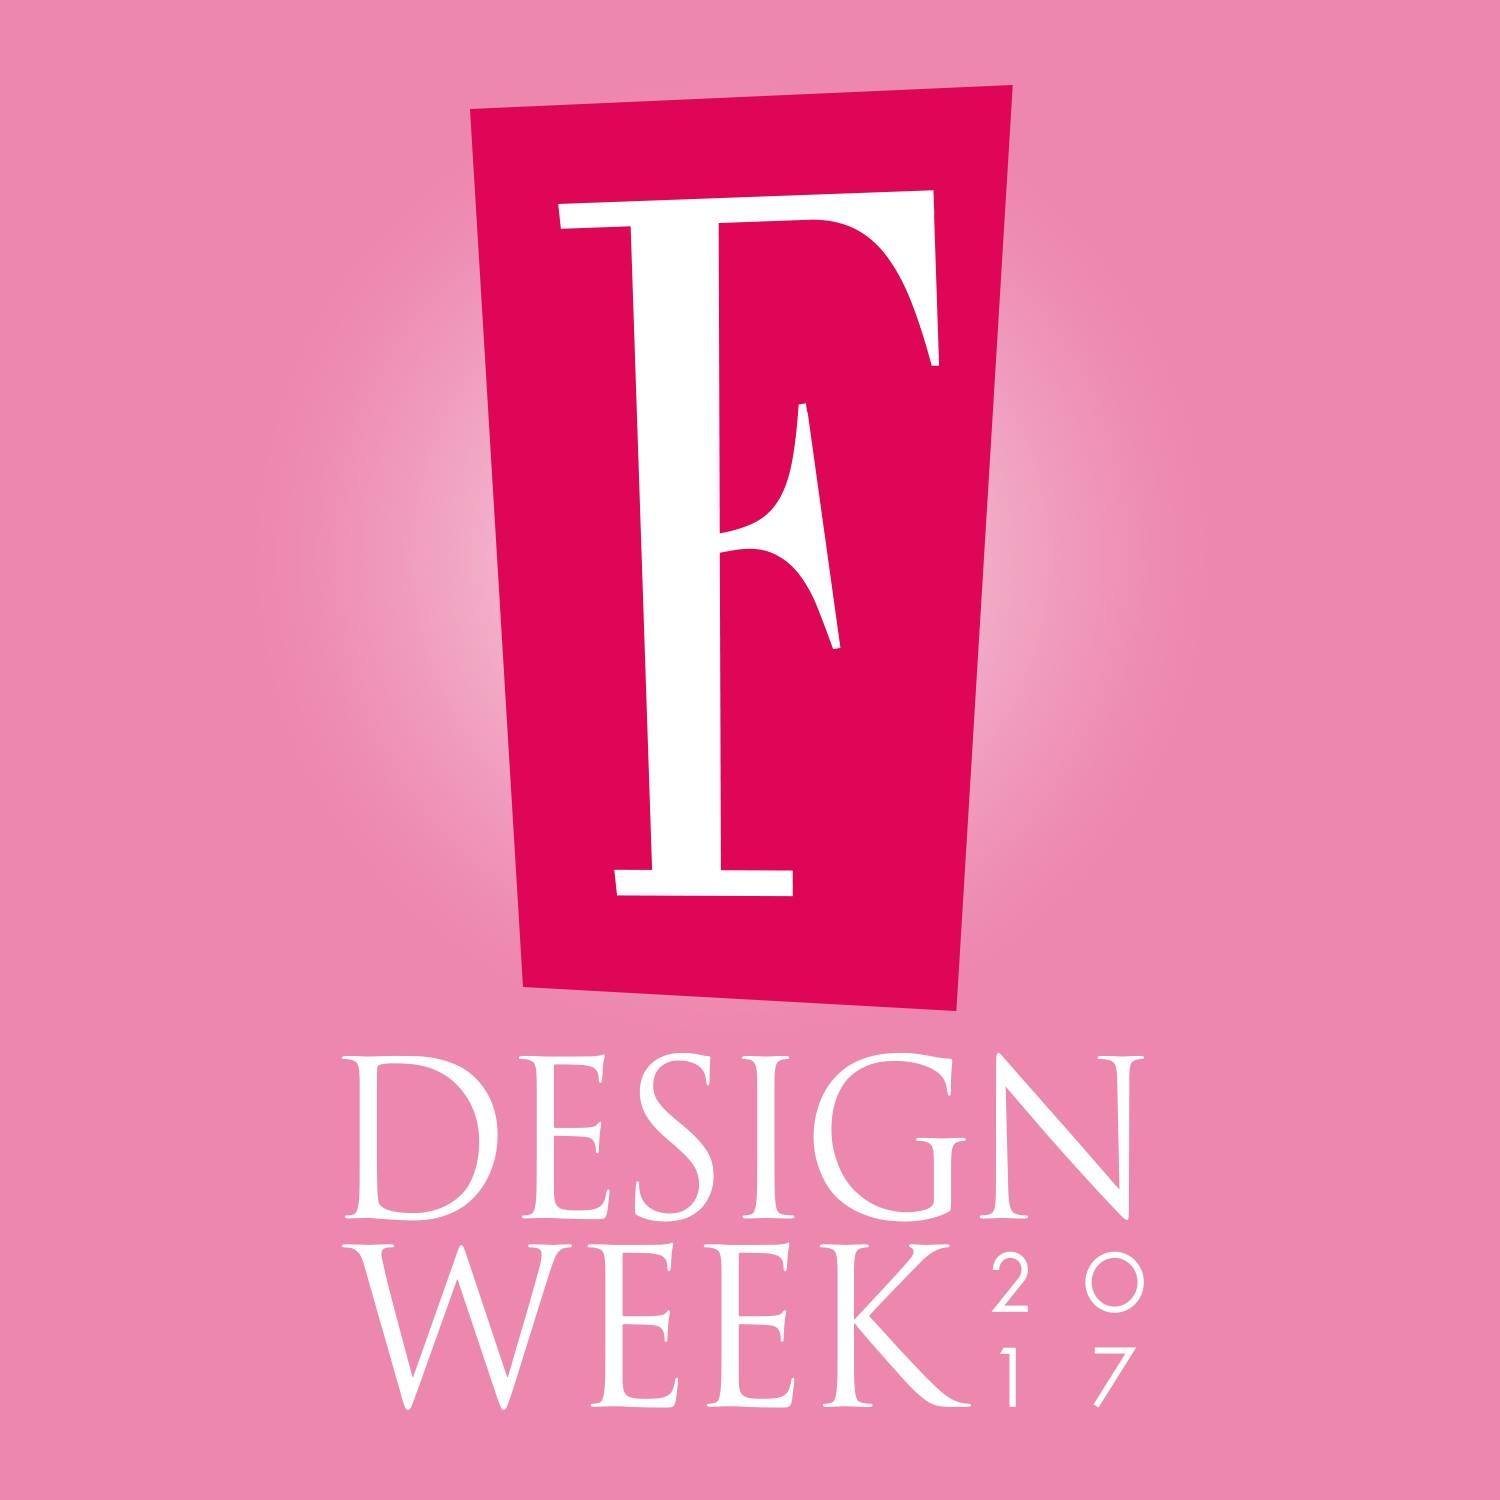 F design week 2017 for Design week 2017